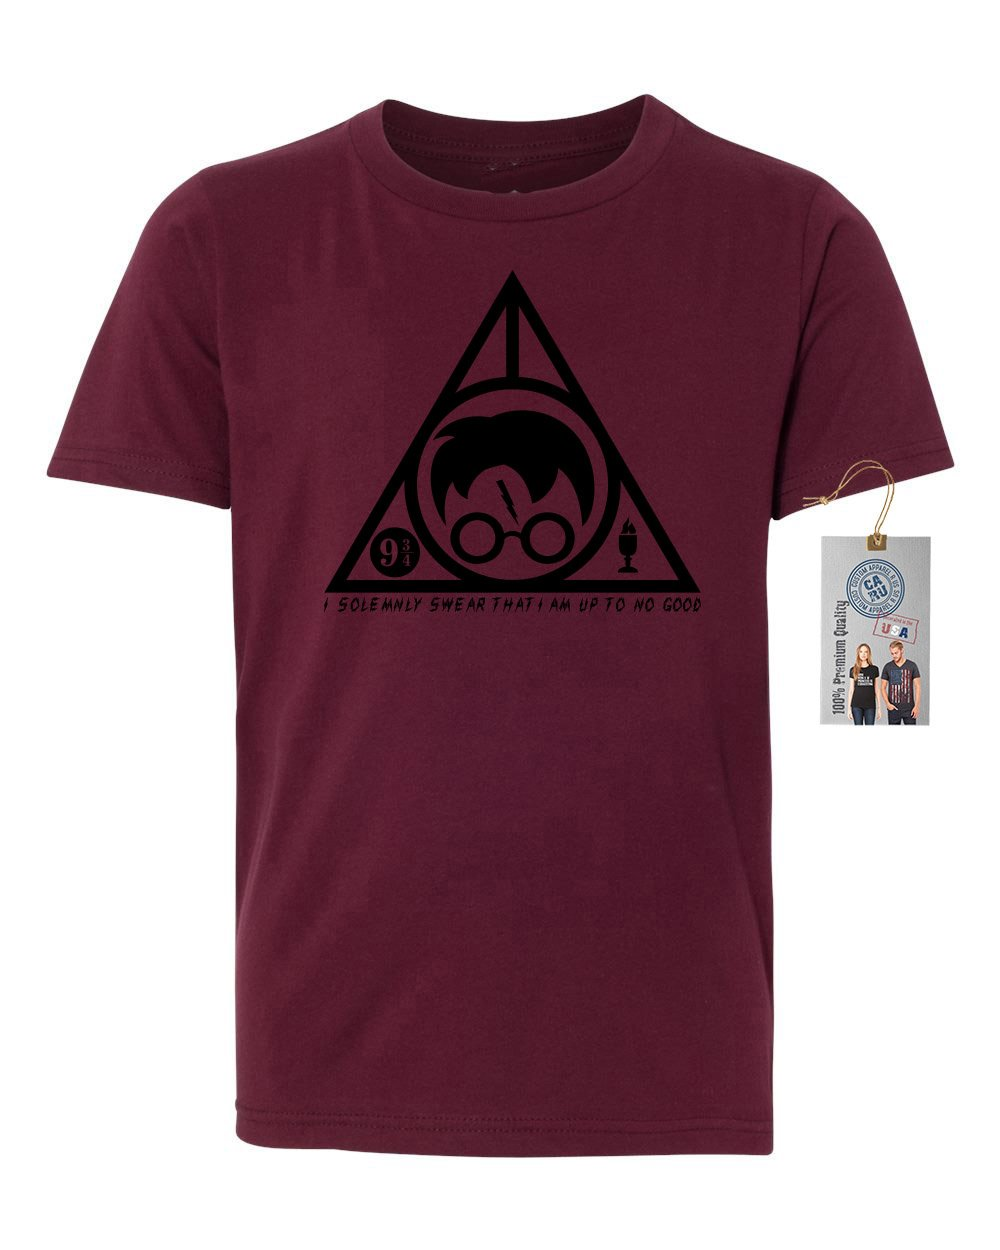 Harry Potter Solemnly Swear Triangle Youth Short Sleeve Shirt Maroon M